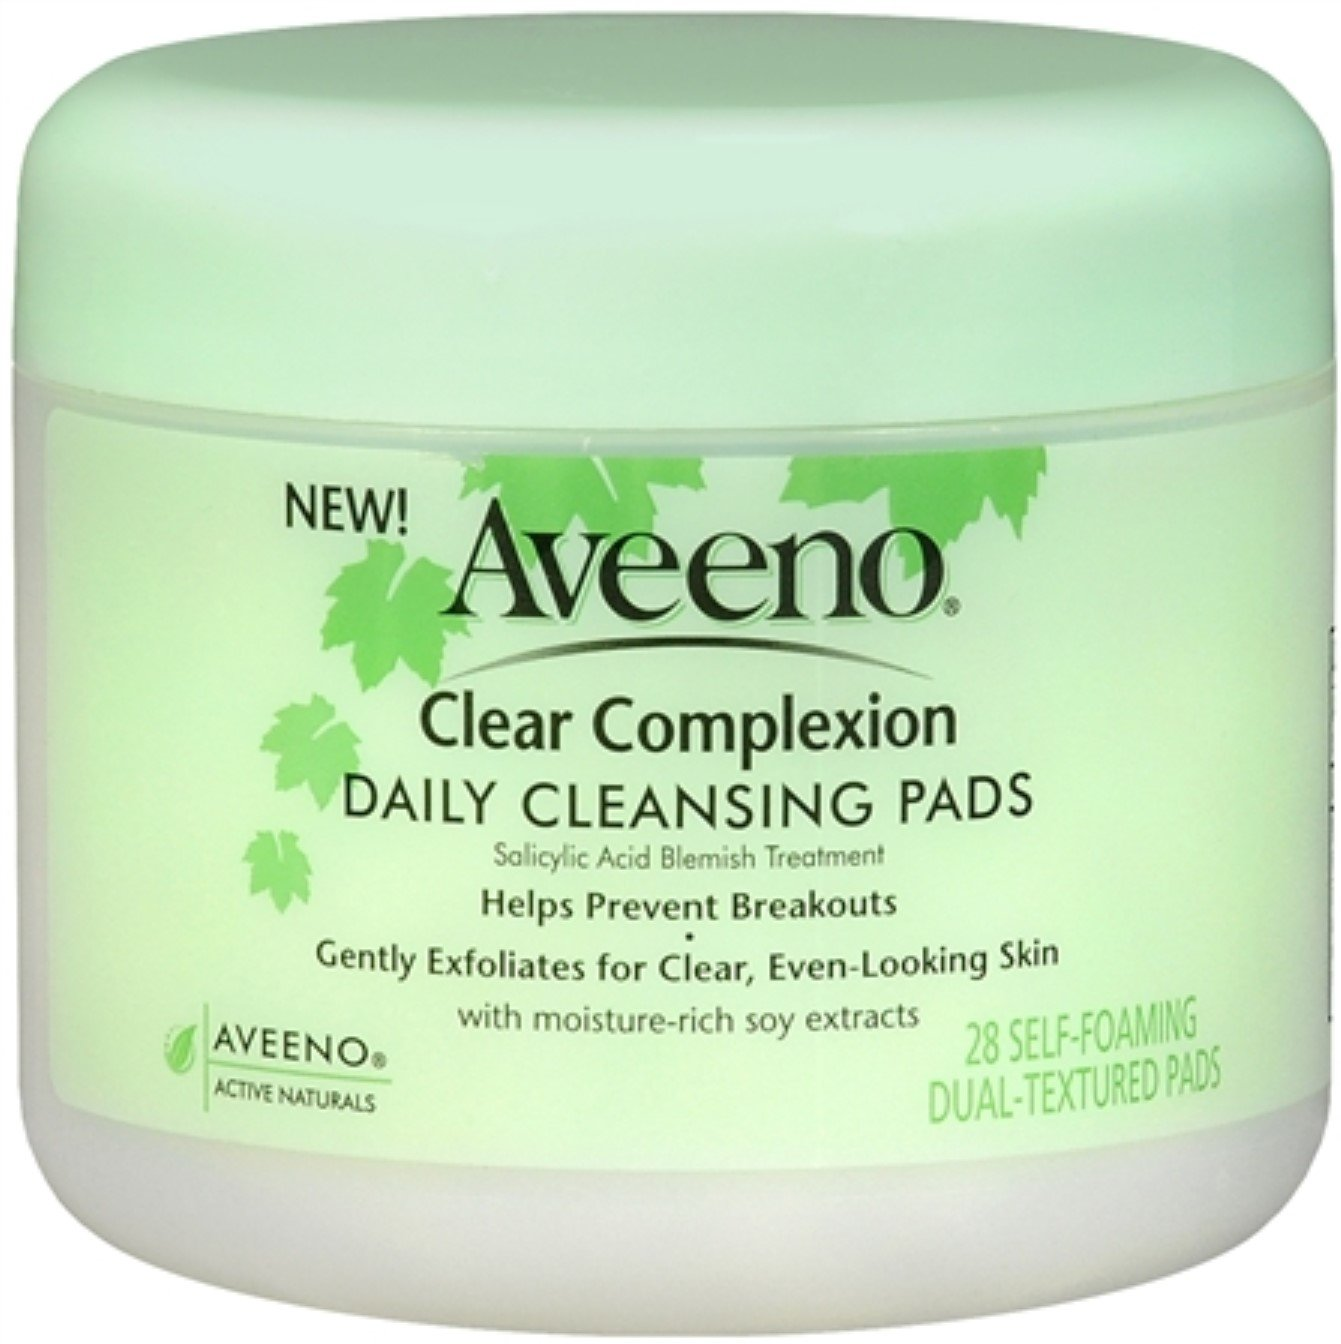 Aveeno Complexion Cleansing Salicylic Treatment